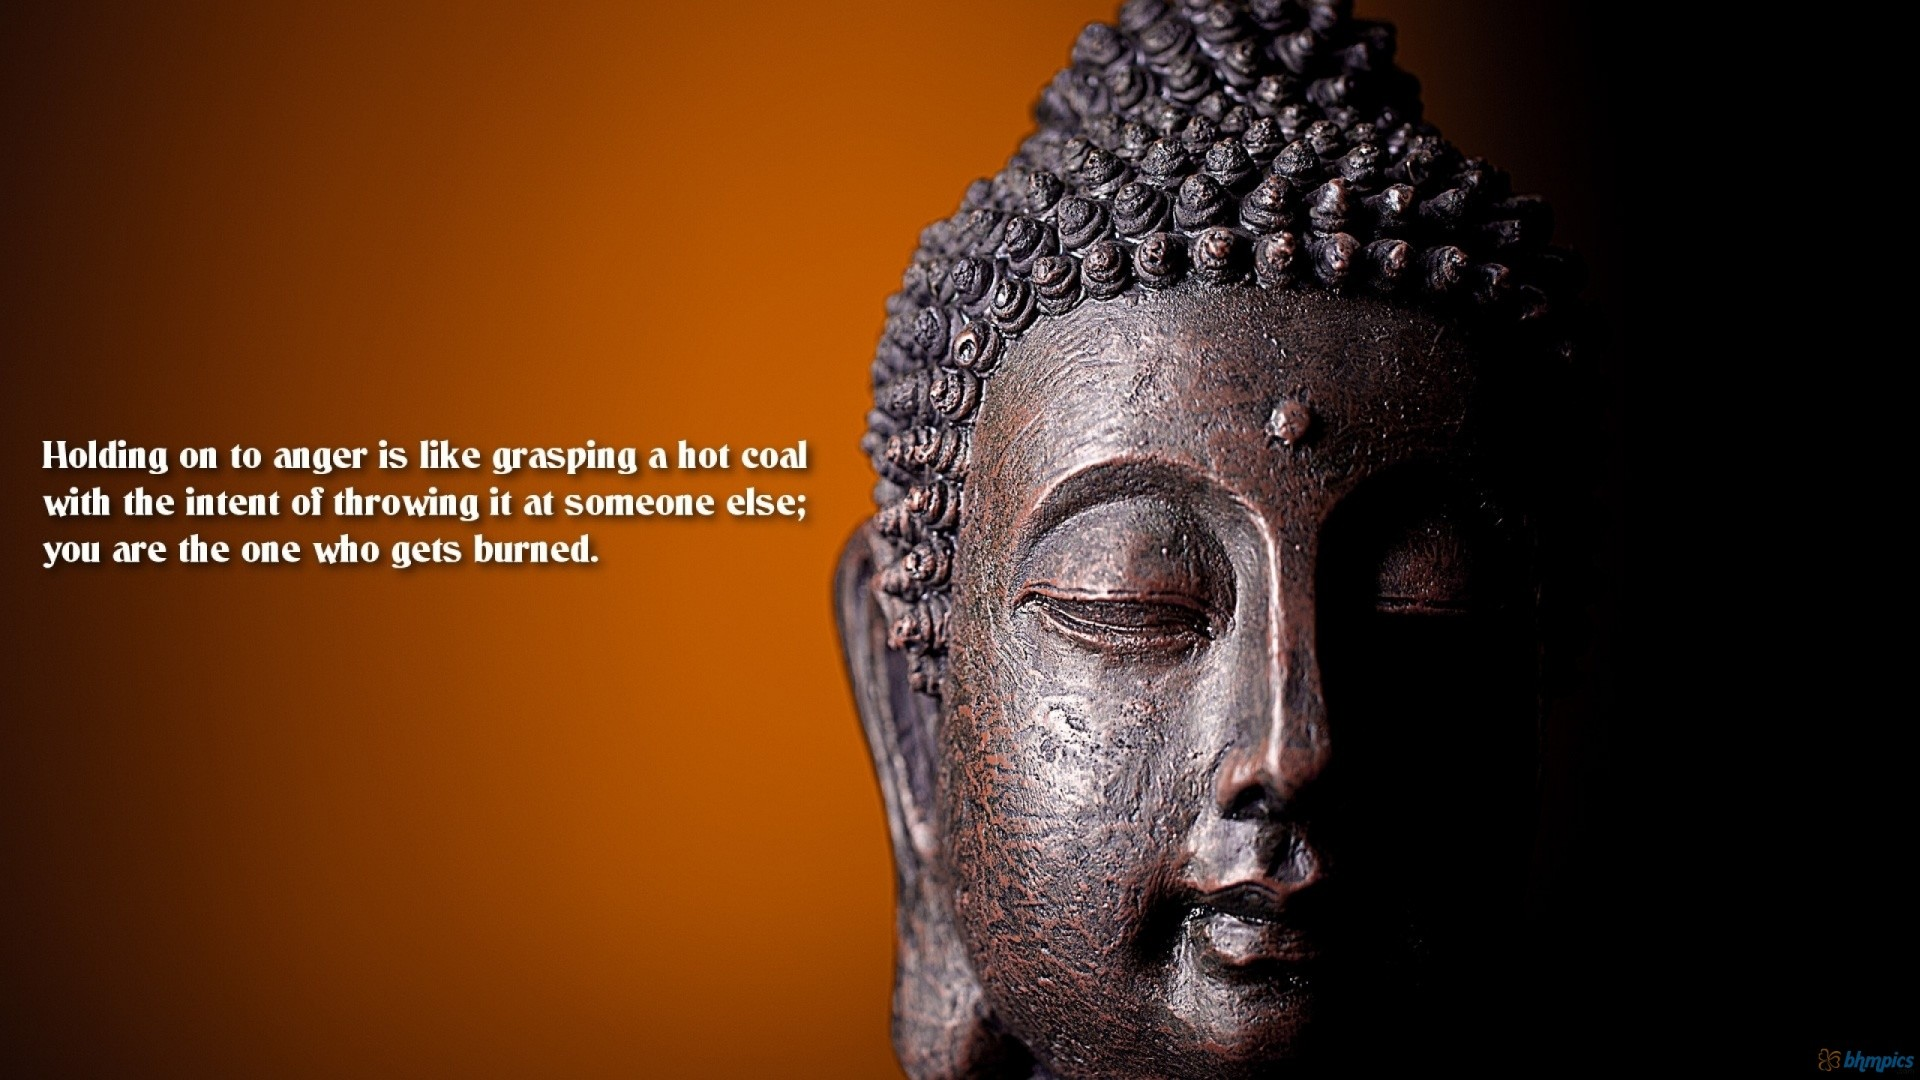 Buddha Wallpaper 1920x1080 (79  images) for Beautiful Buddha Wallpaper  545xkb